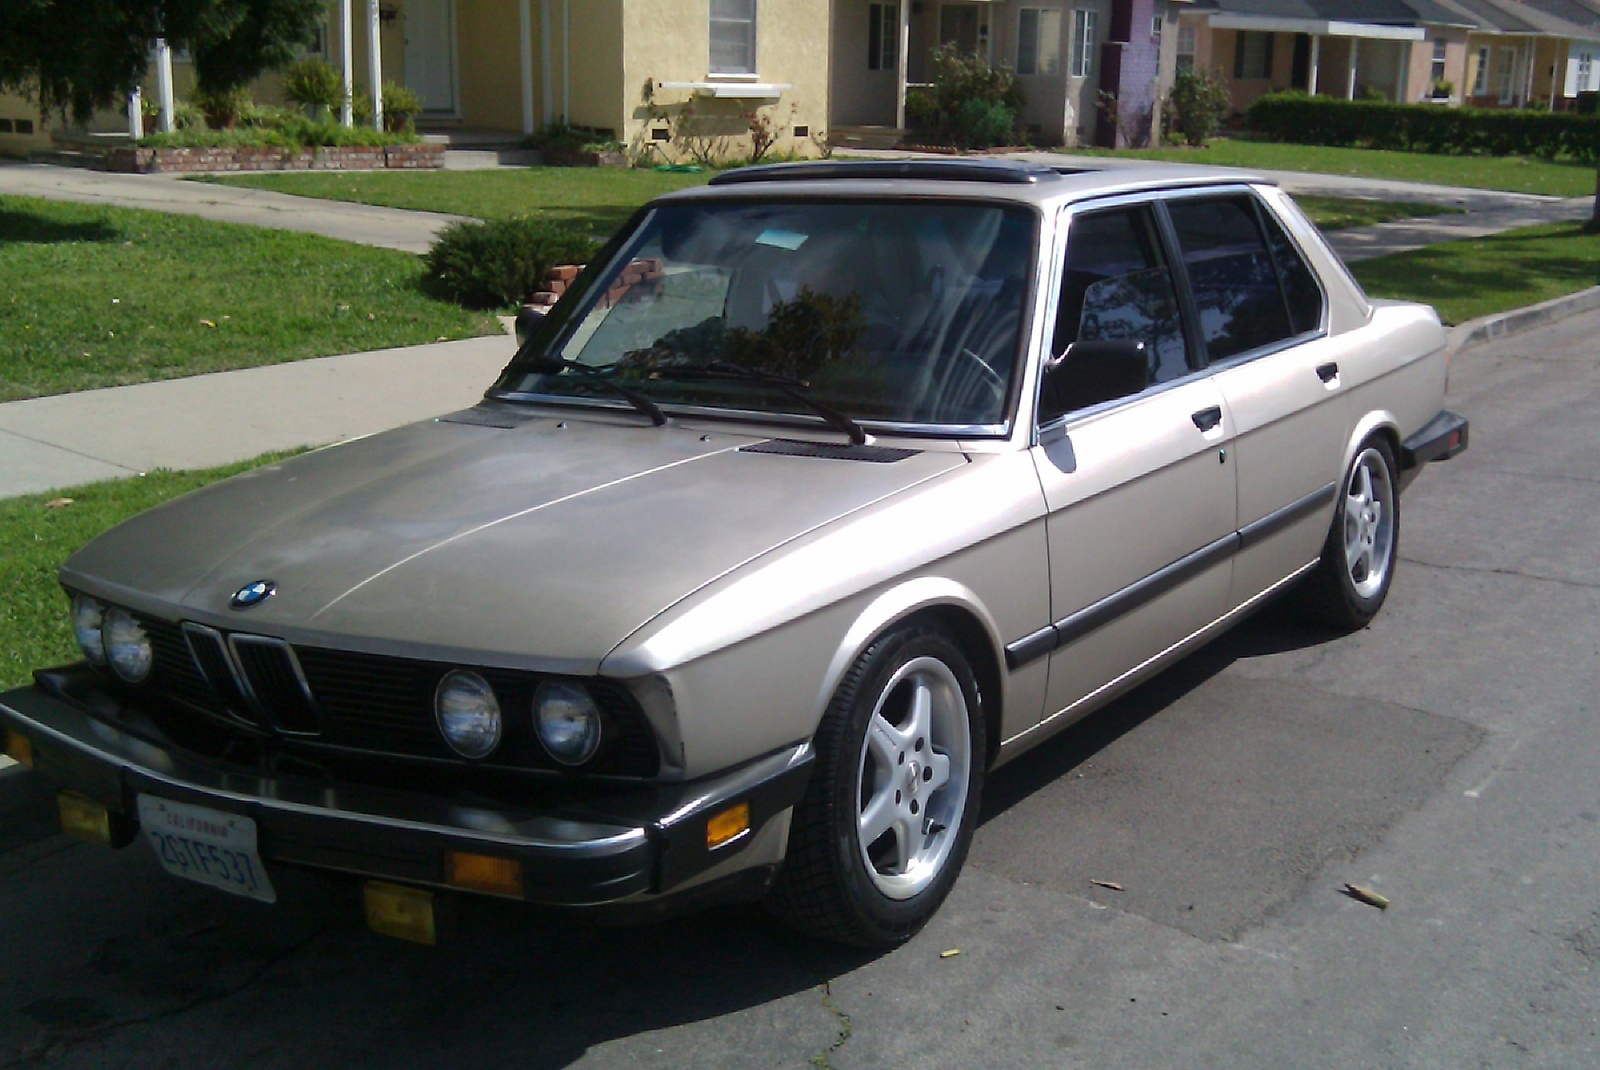 BMW 5 series 528i 1986 photo - 6